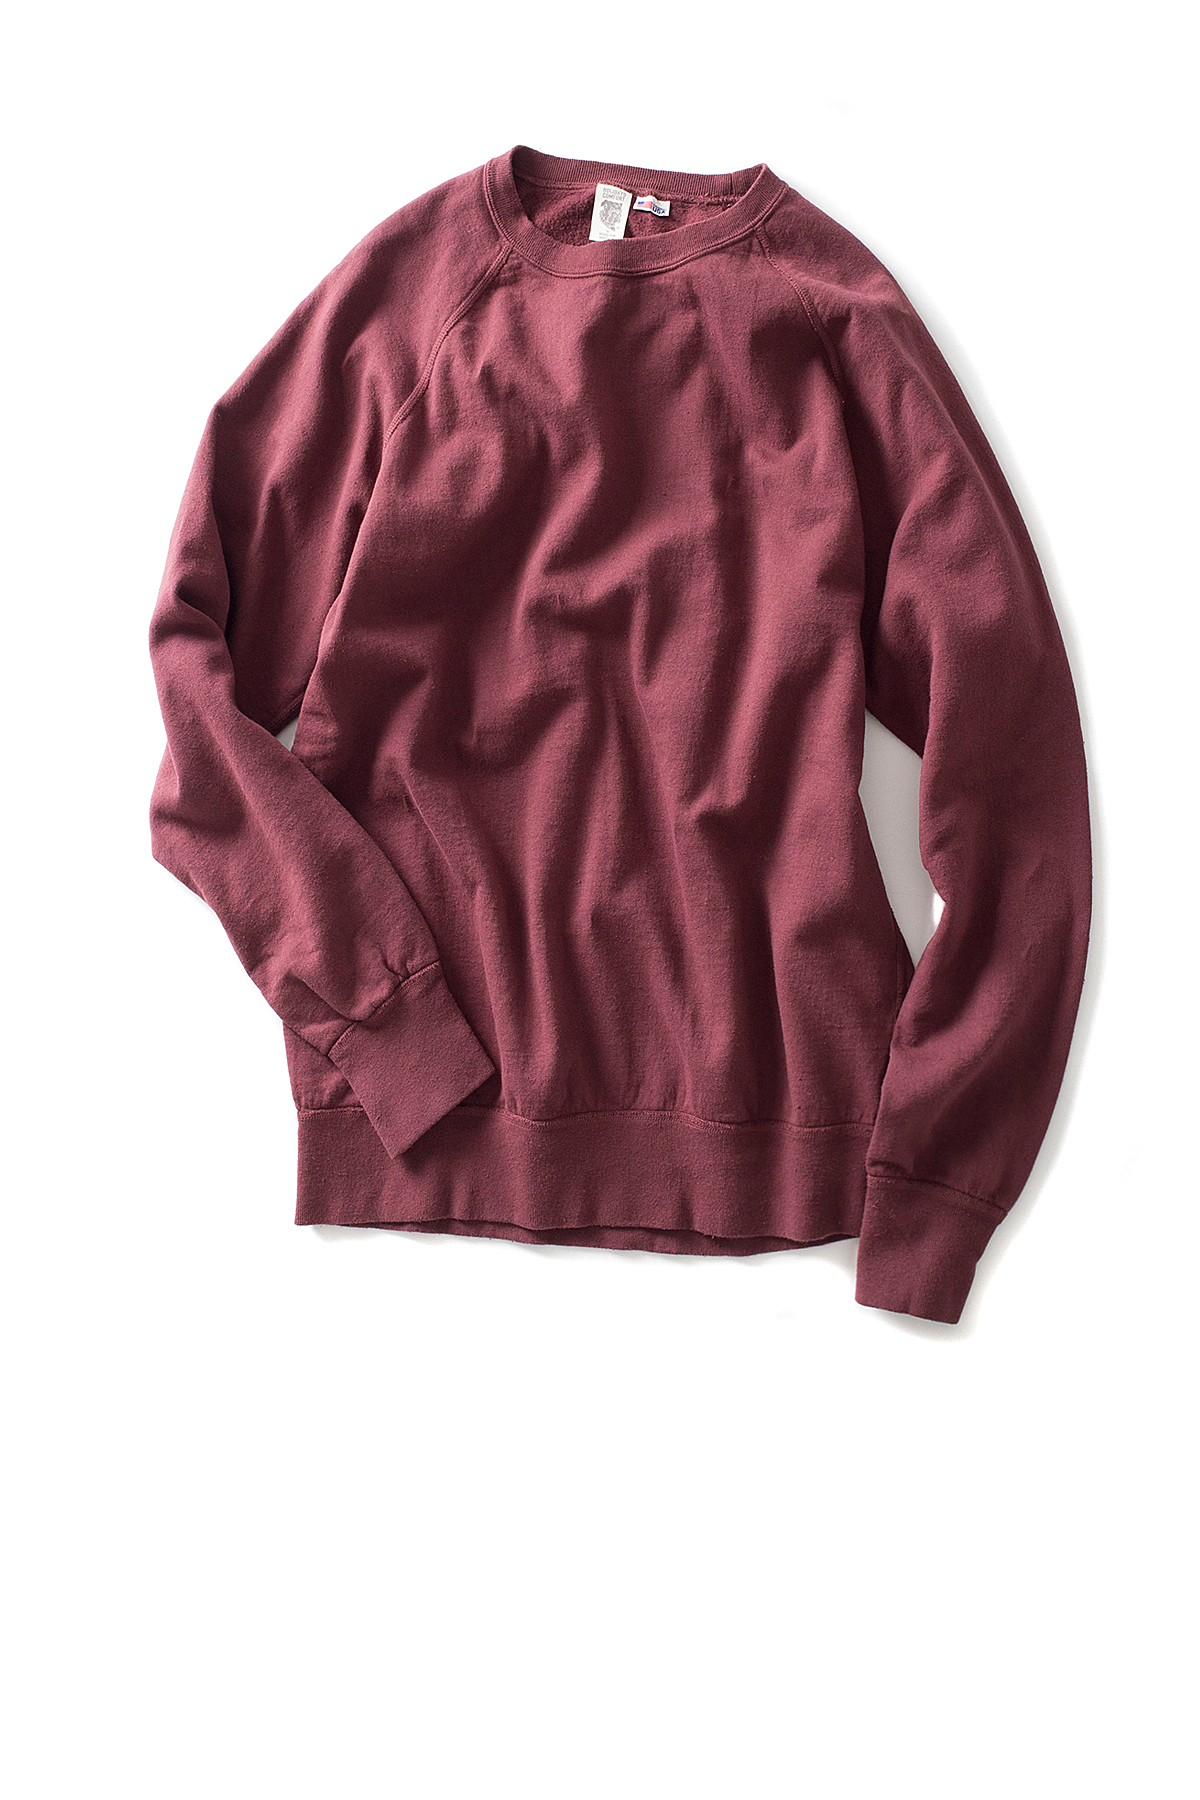 Riding High : 7.5oz USA Fleece Raglan Sweat (Burgundy)